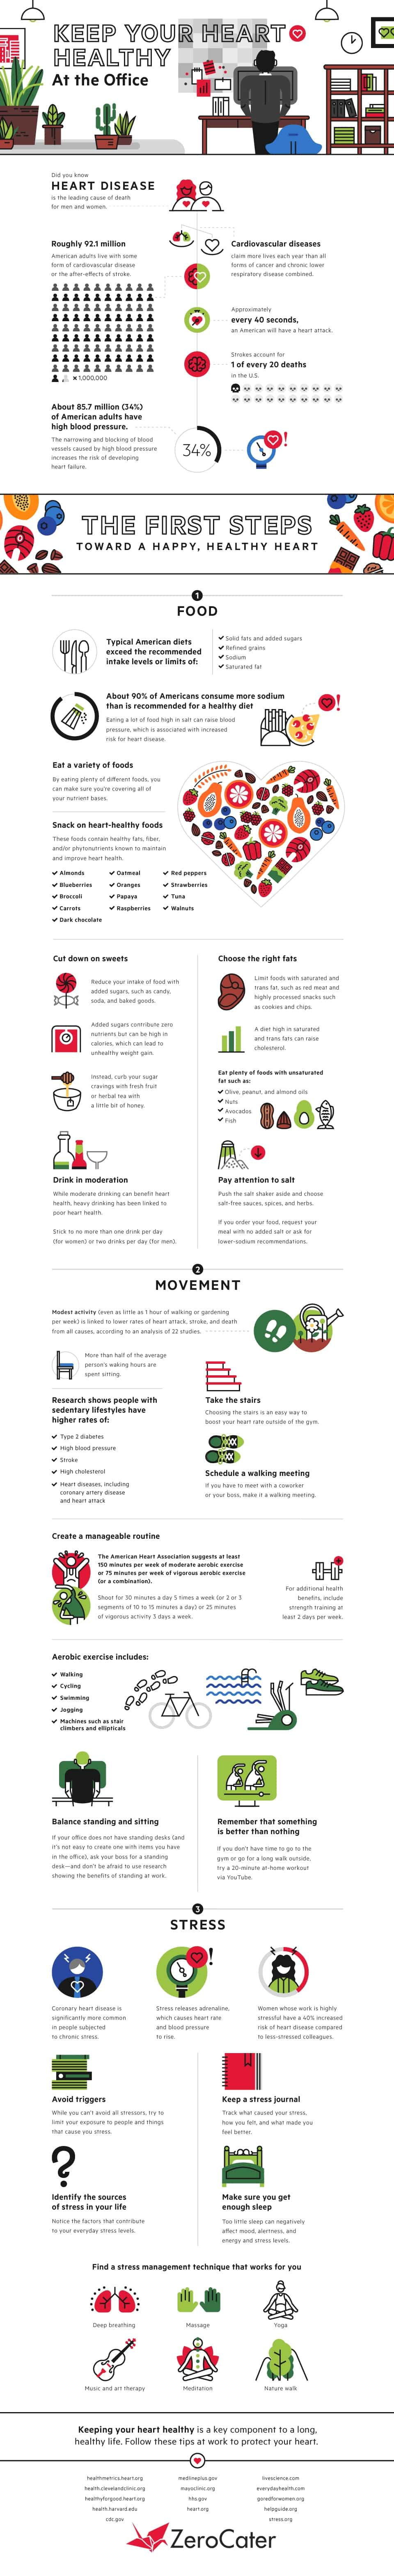 A Healthy Heart in Just Three Steps - Infographic